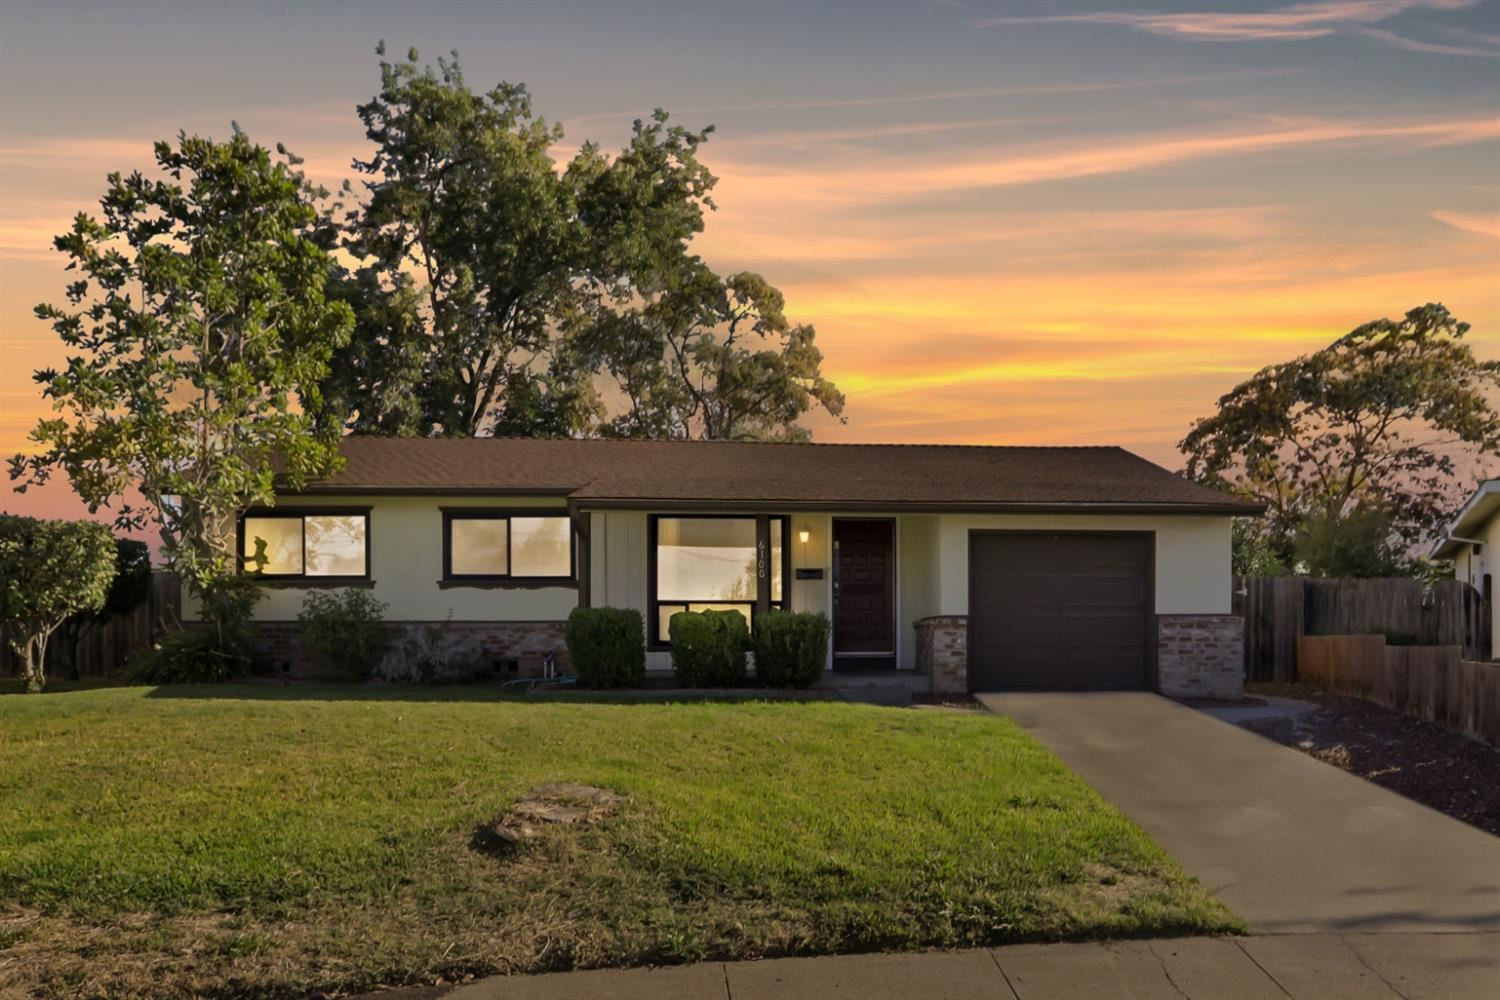 6100 Coil Court, North Highlands, CA 95660 - MLS#: 221110605